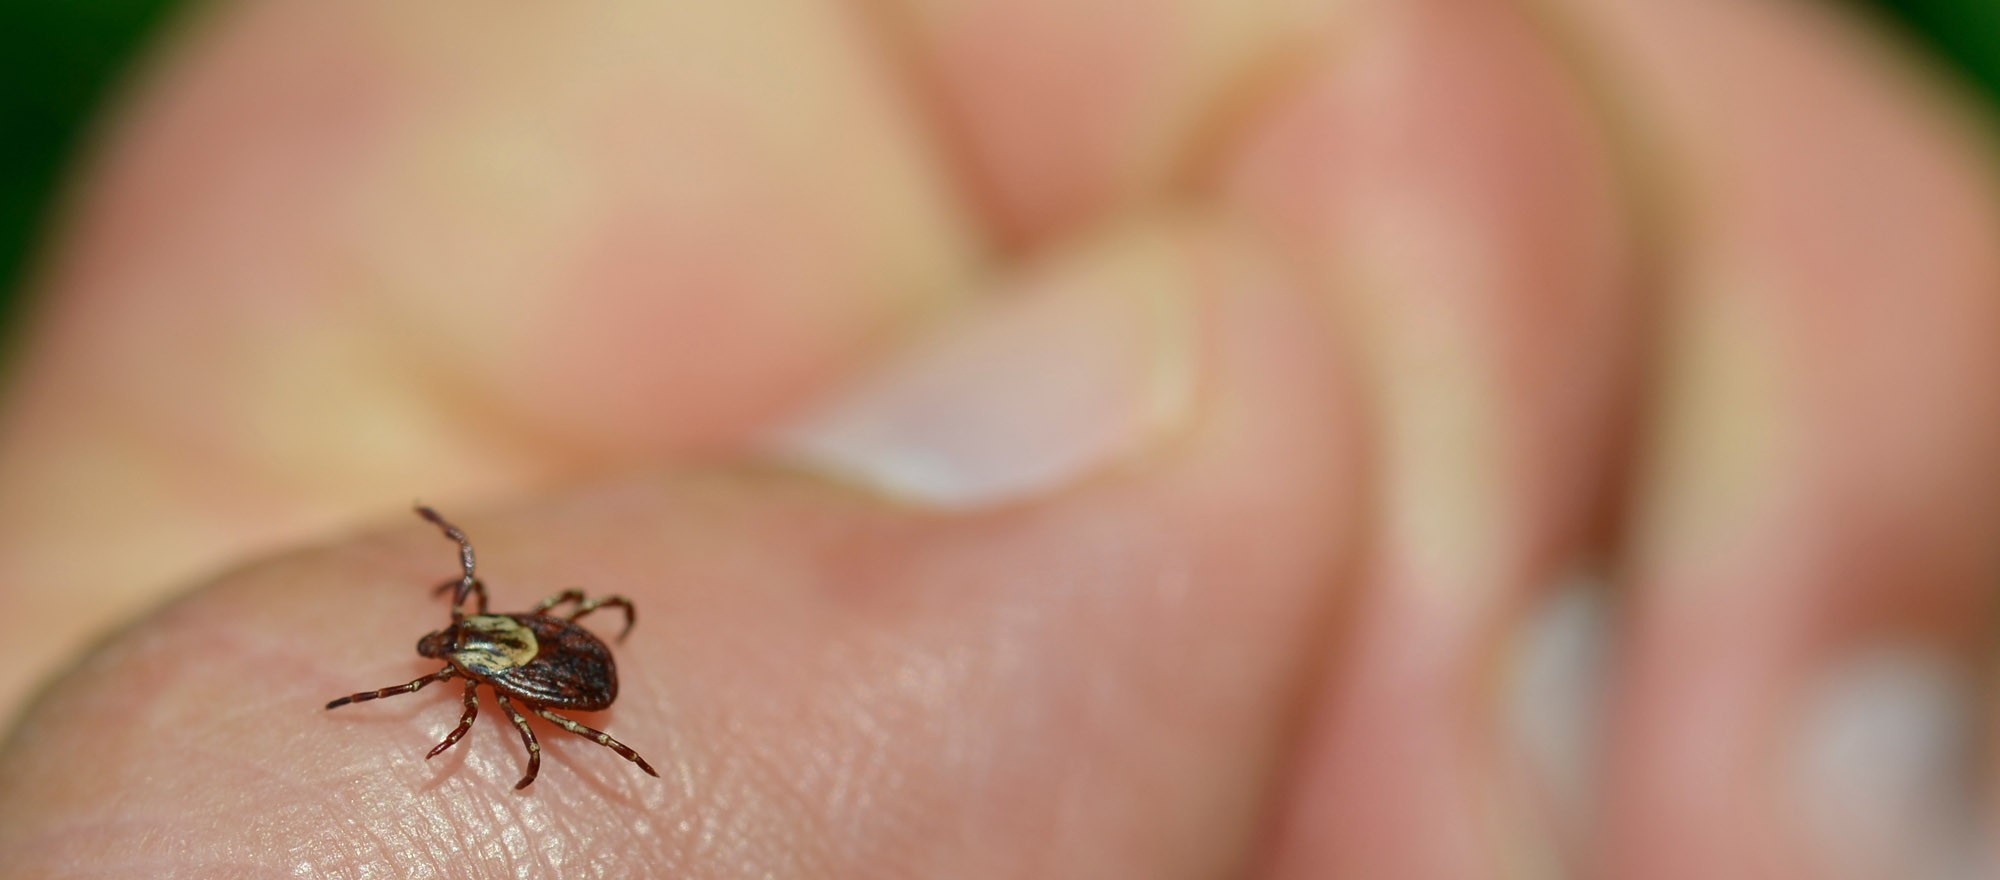 parke-company-emergency-services-tree-landscape-irrigation-maintenance-blog-How-to-Identify-and-Avoid-Unwanted-Bugs-and-Poisonous-Plants-Header-tick